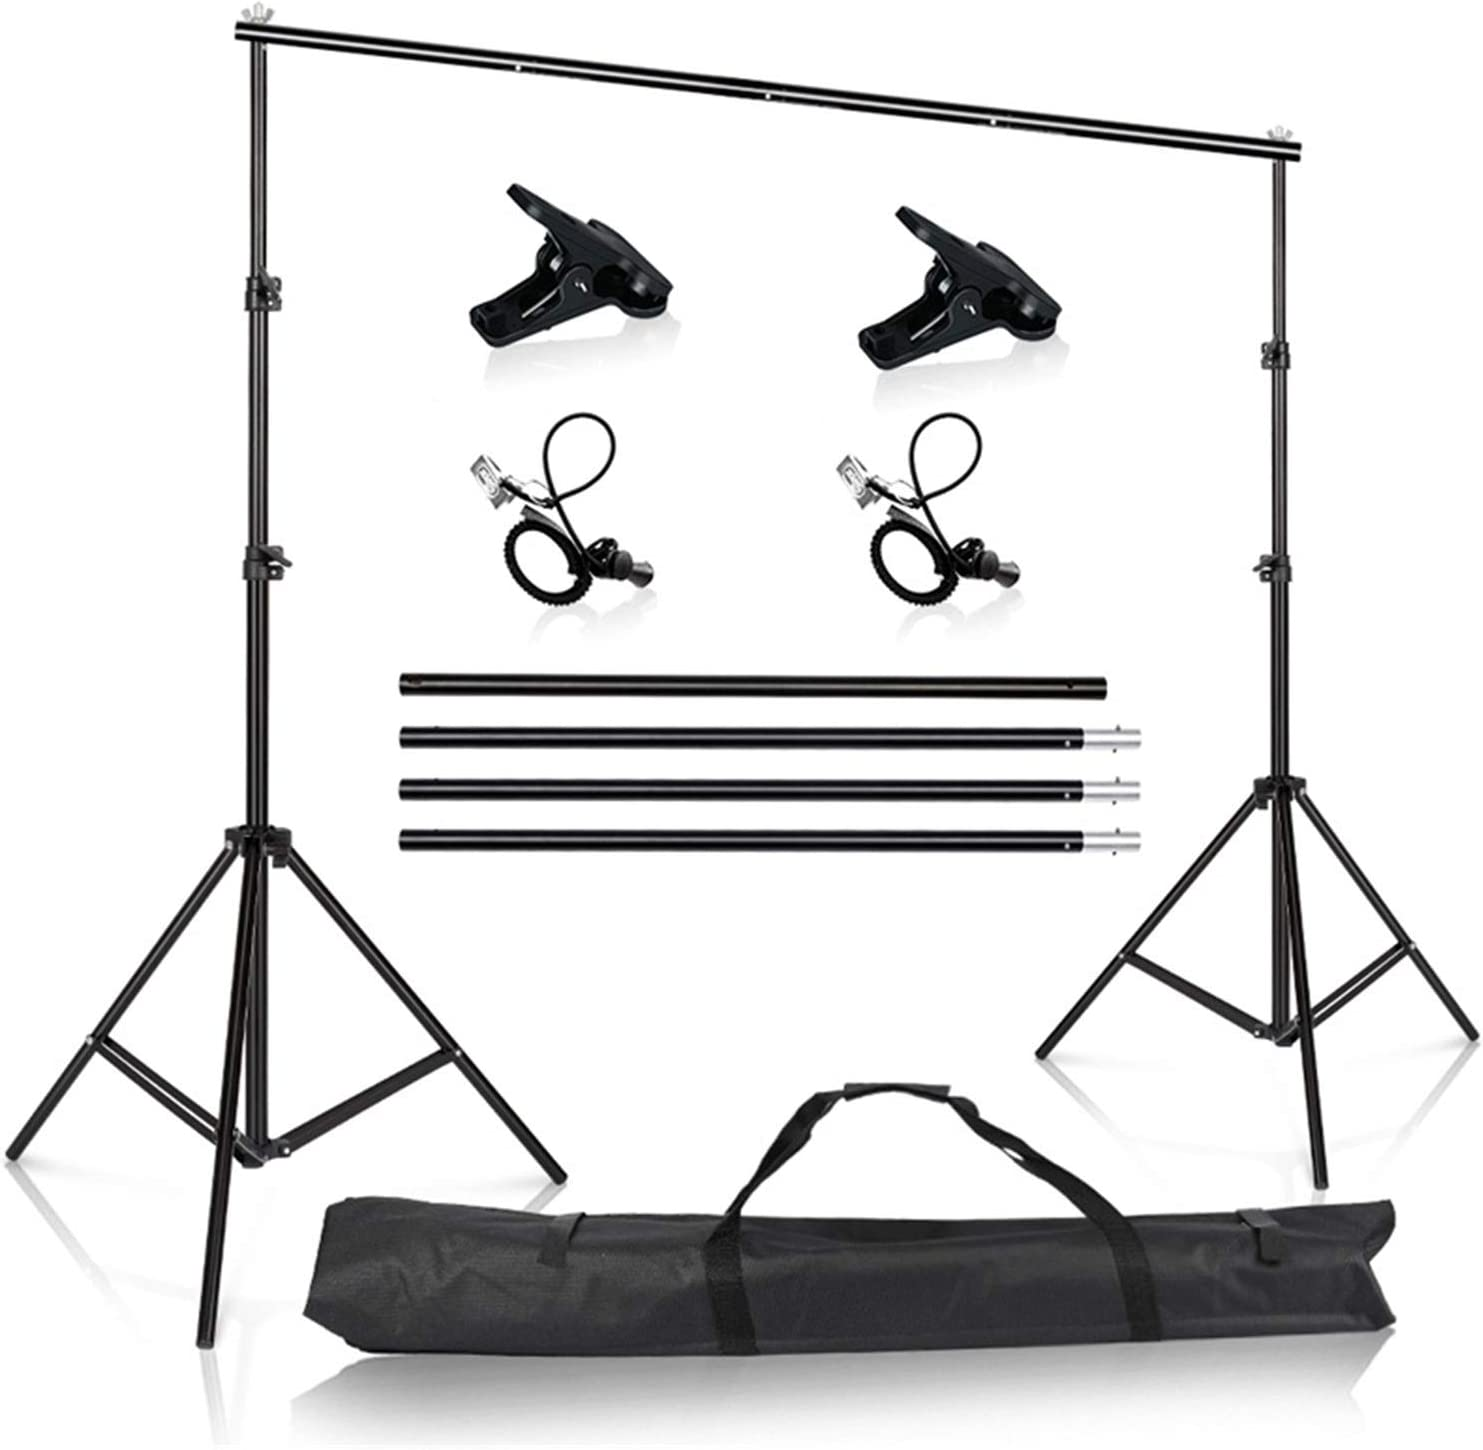 Zhice Photography Studio Photo Video Backdrop Tall B Recommended NEW before selling Frame Stand